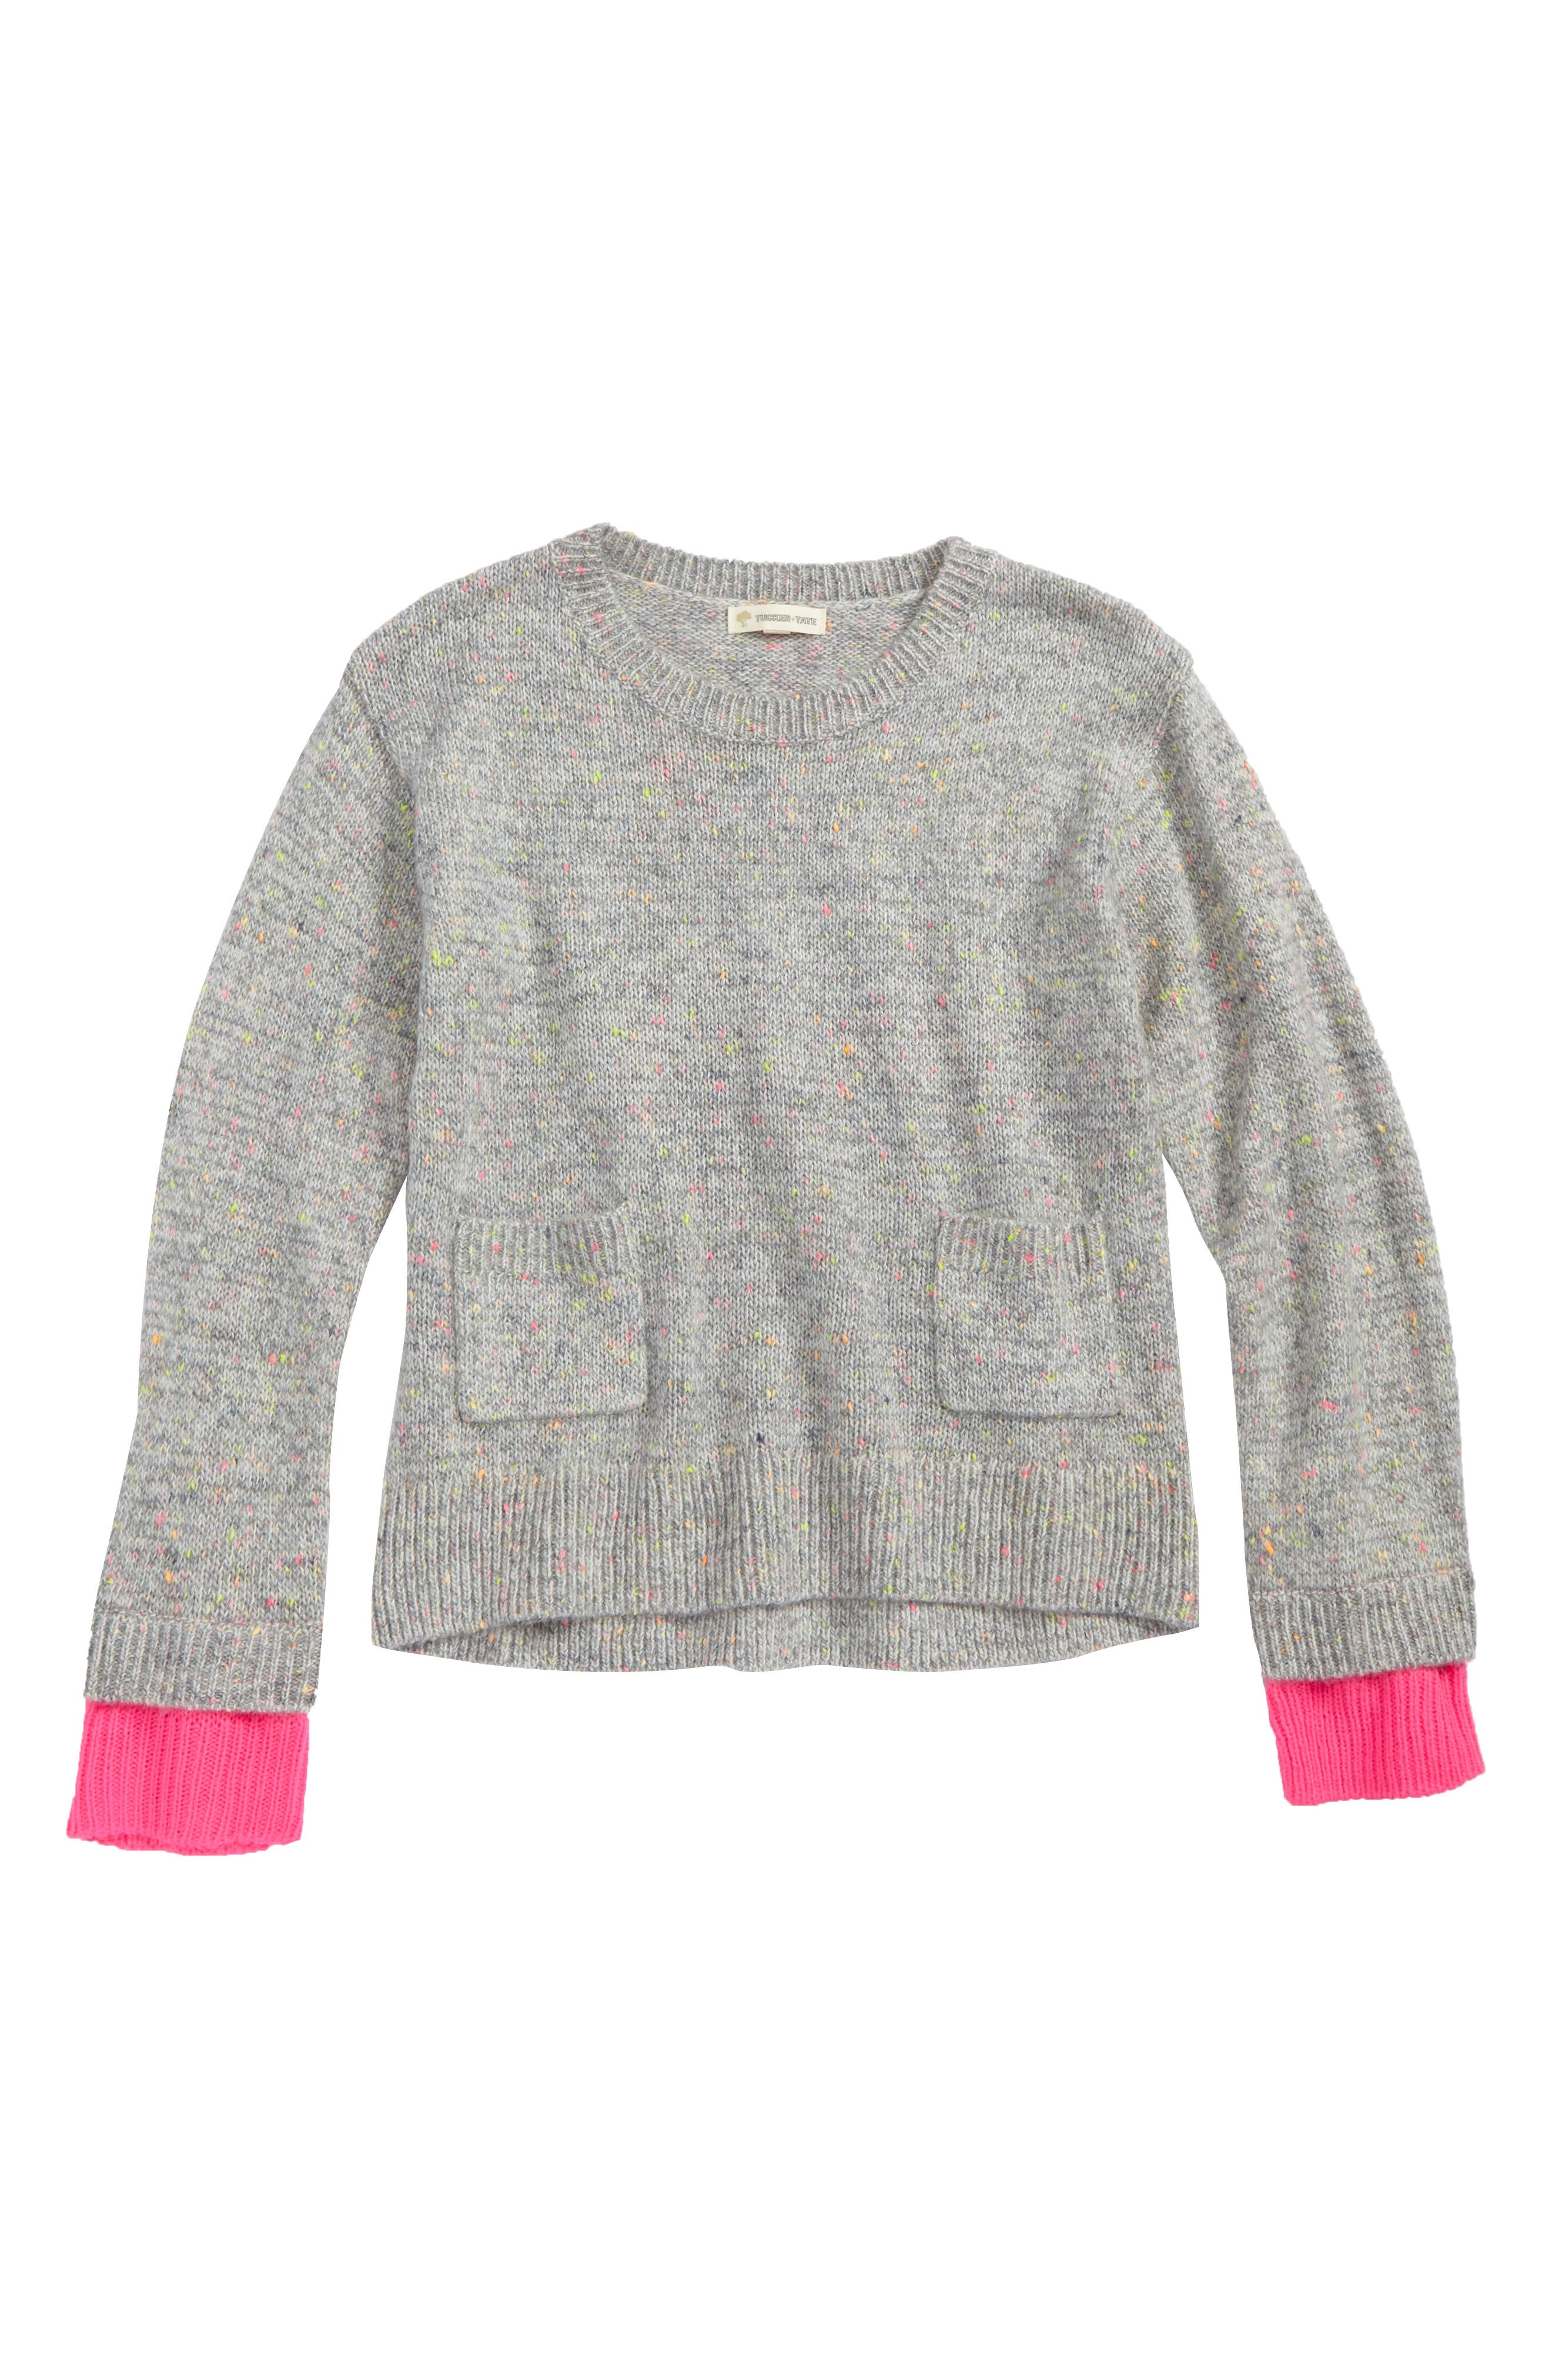 Neon Knit Sweater,                             Main thumbnail 1, color,                             Grey Heather